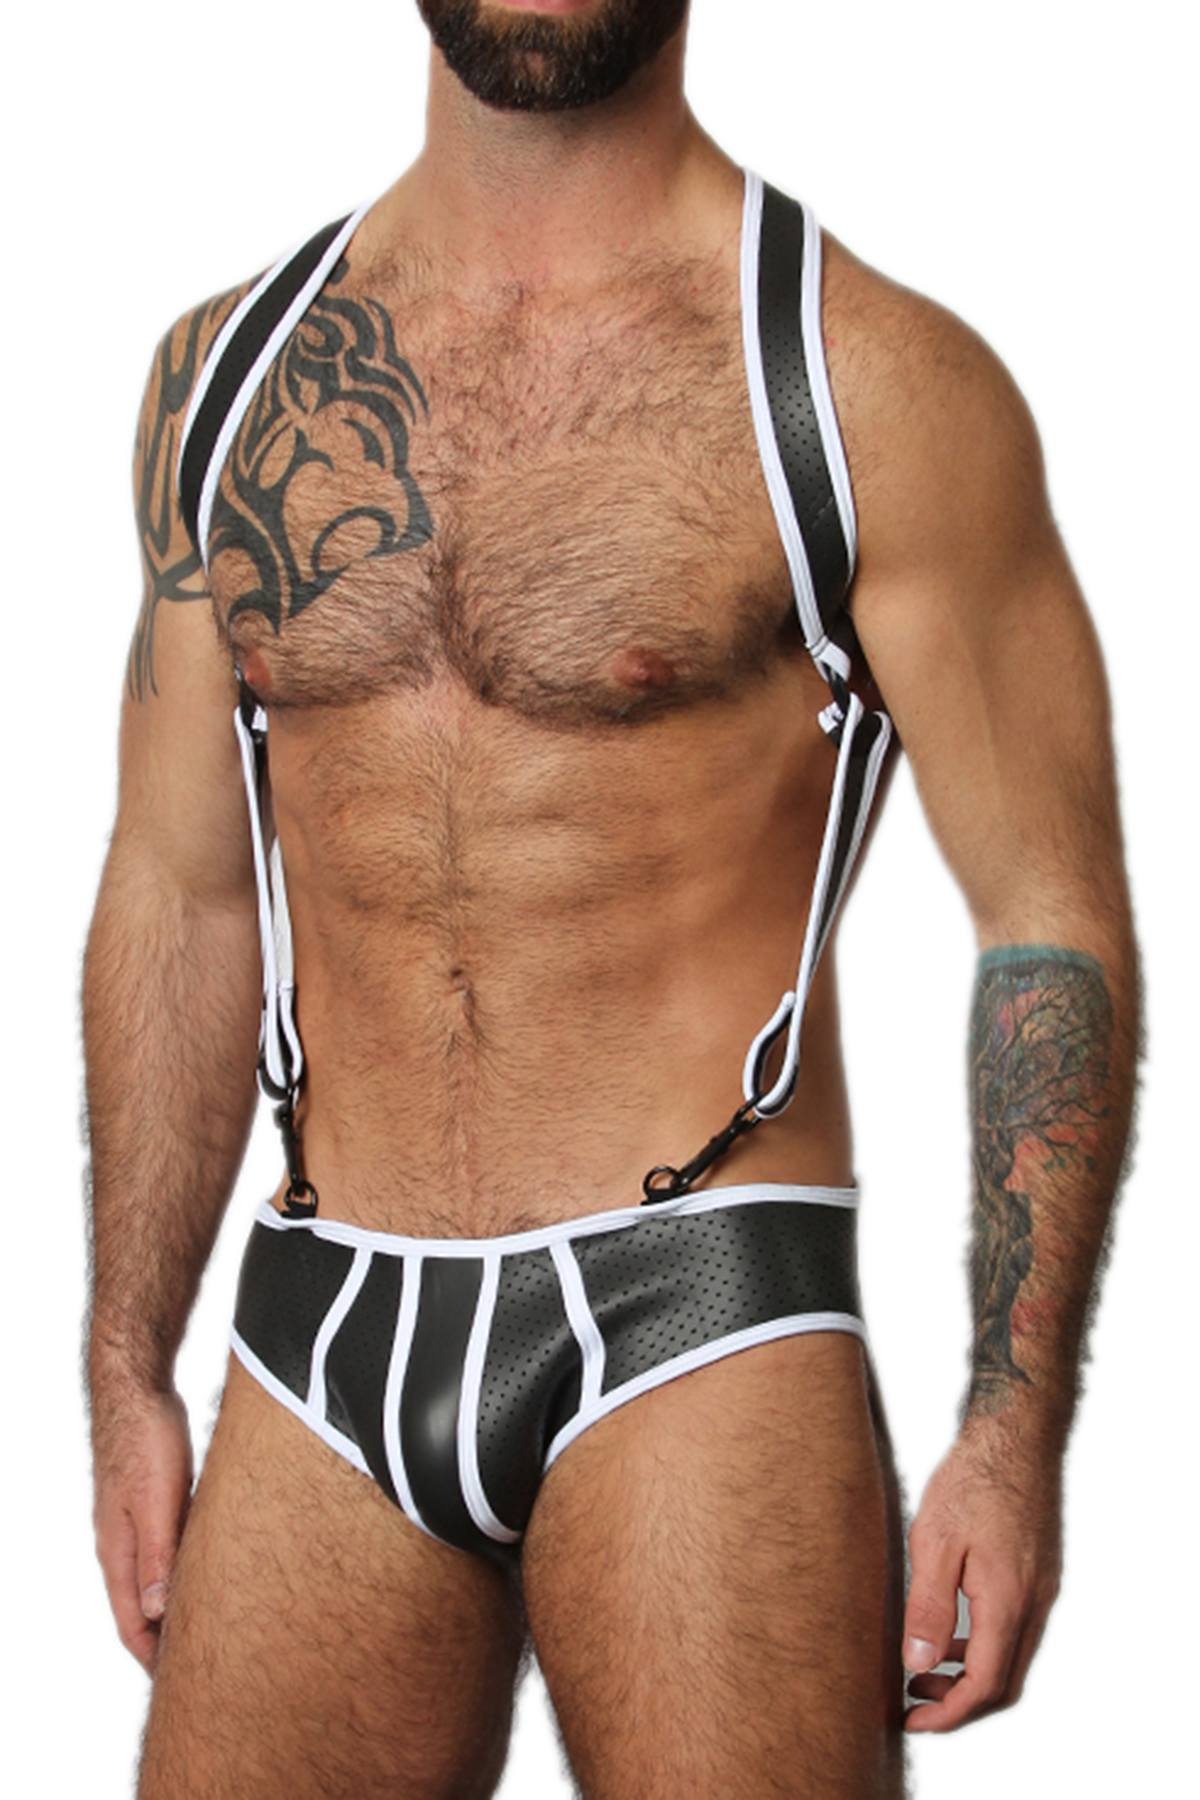 CellBlock 13 White Gunner Neoprene Harness